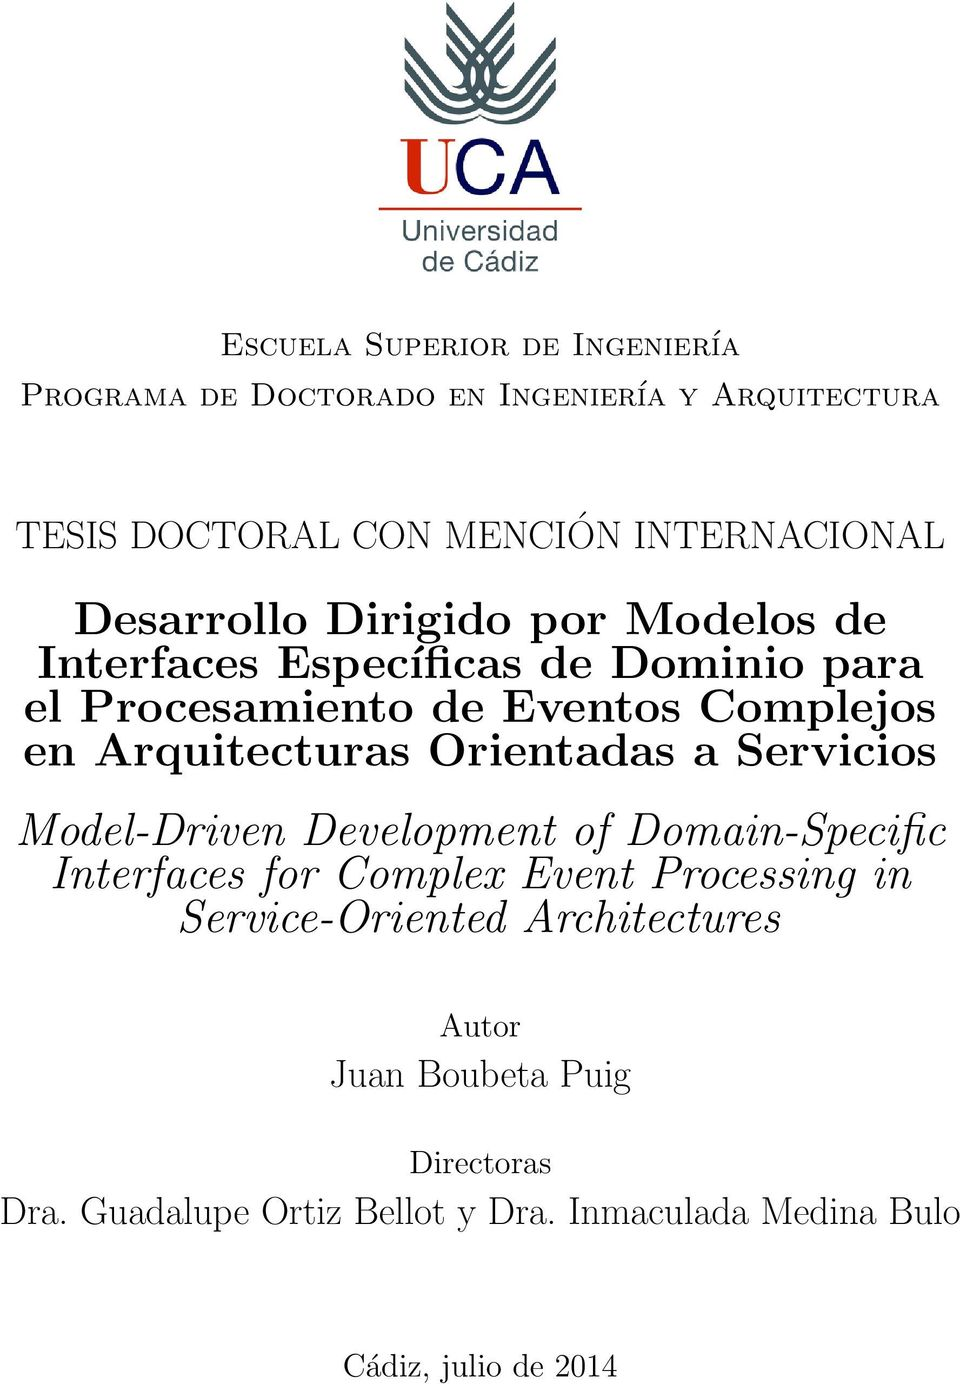 Arquitecturas Orientadas a Servicios Model-Driven Development of Domain-Specific Interfaces for Complex Event Processing in